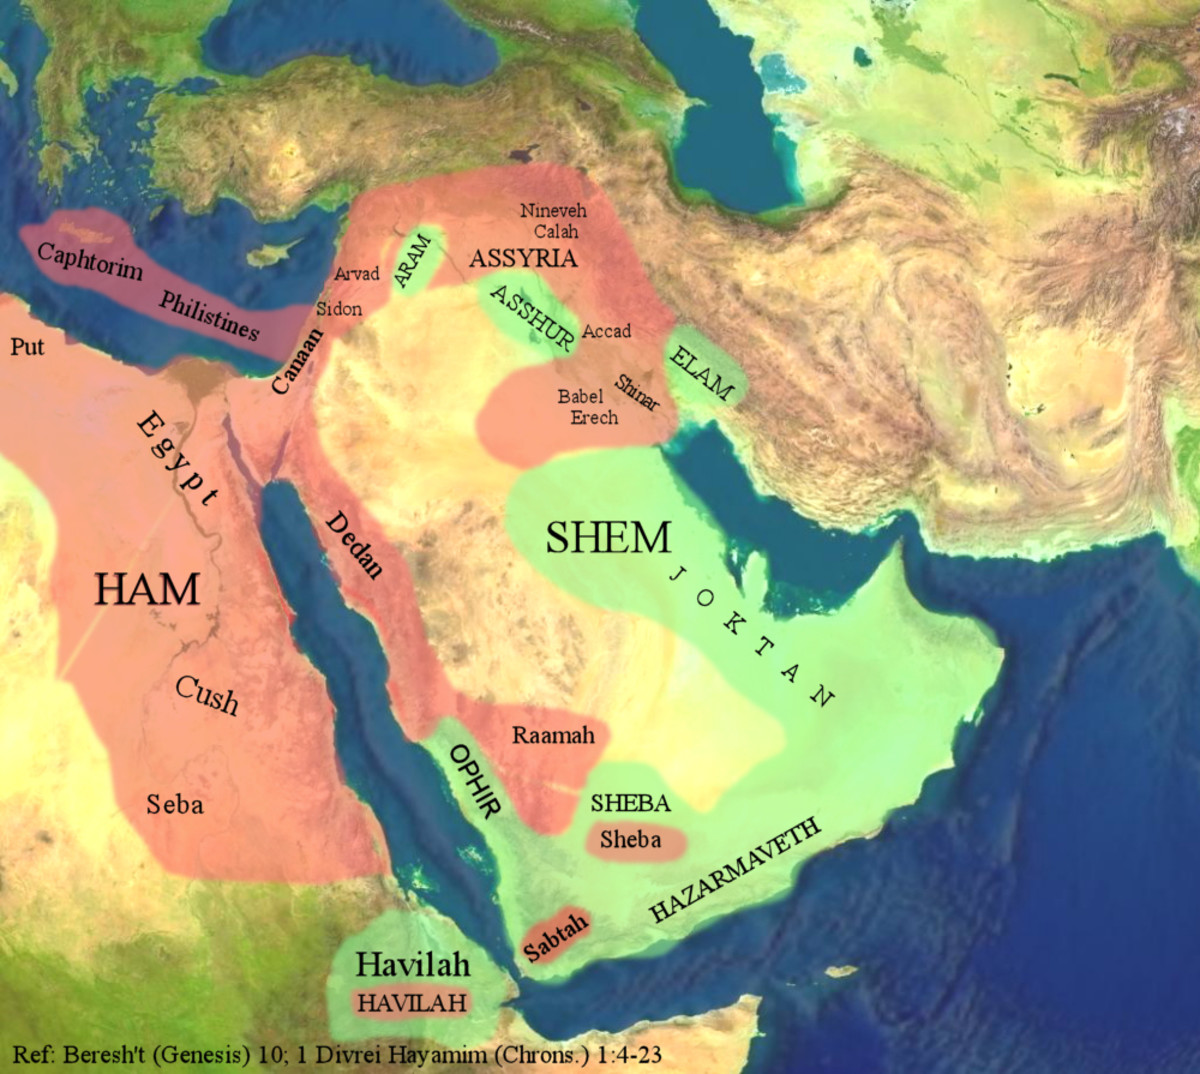 MAP OF MIDDLE EAST WHEN ISRAEL WAS FOUNDED